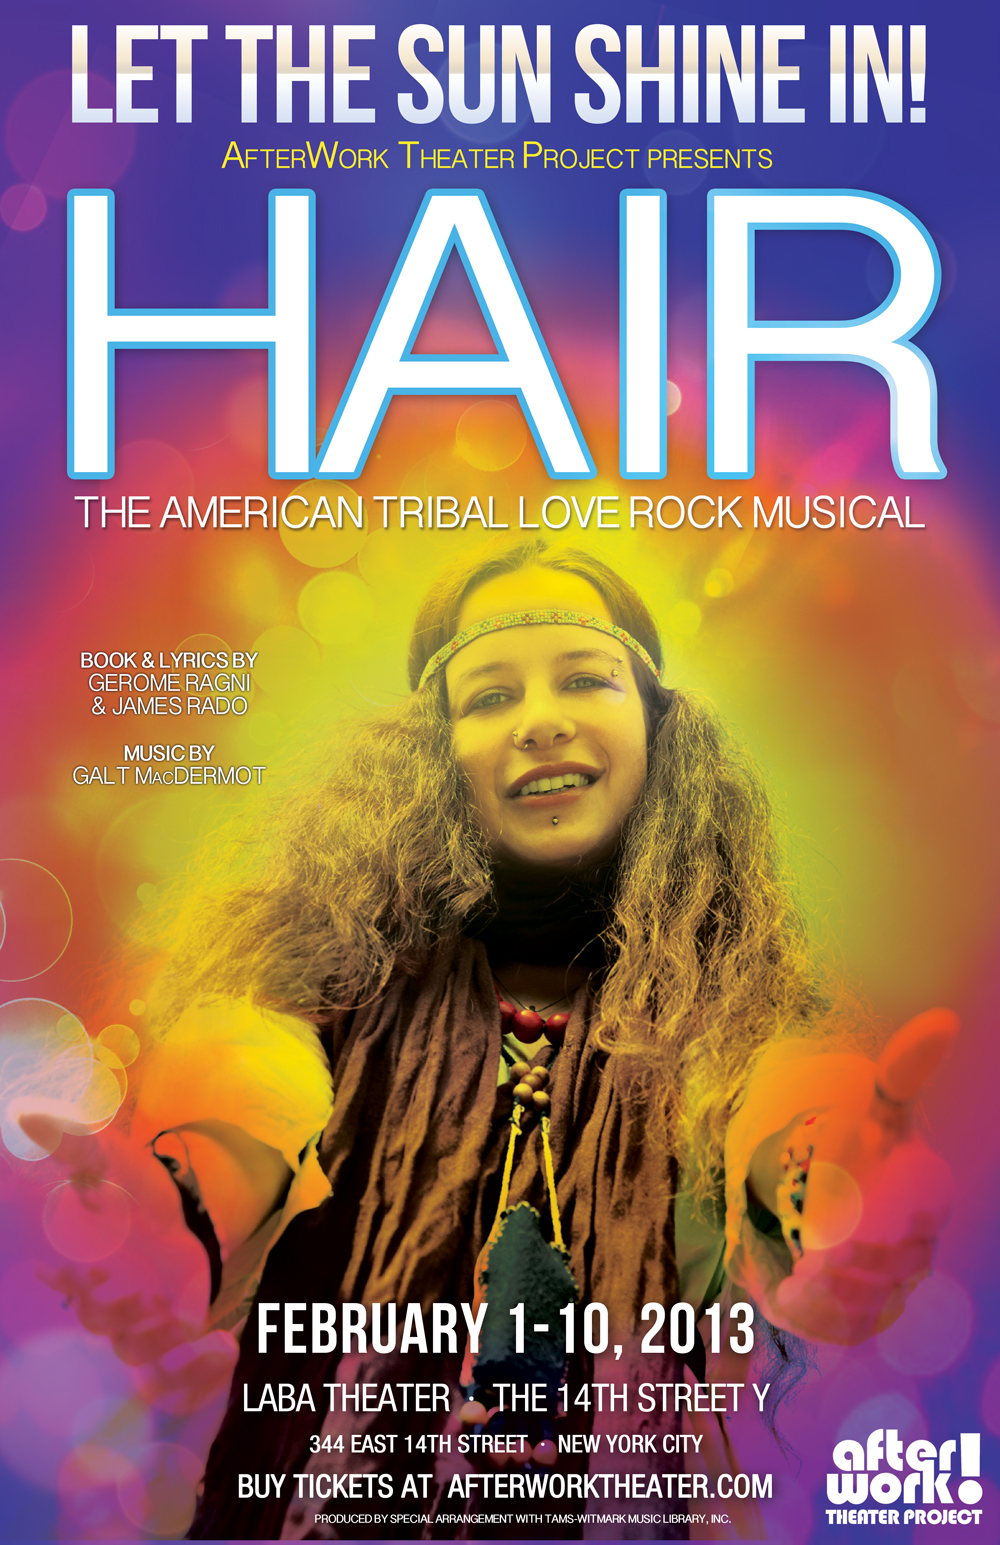 afterwork theater project�s premiere show �hair� at the